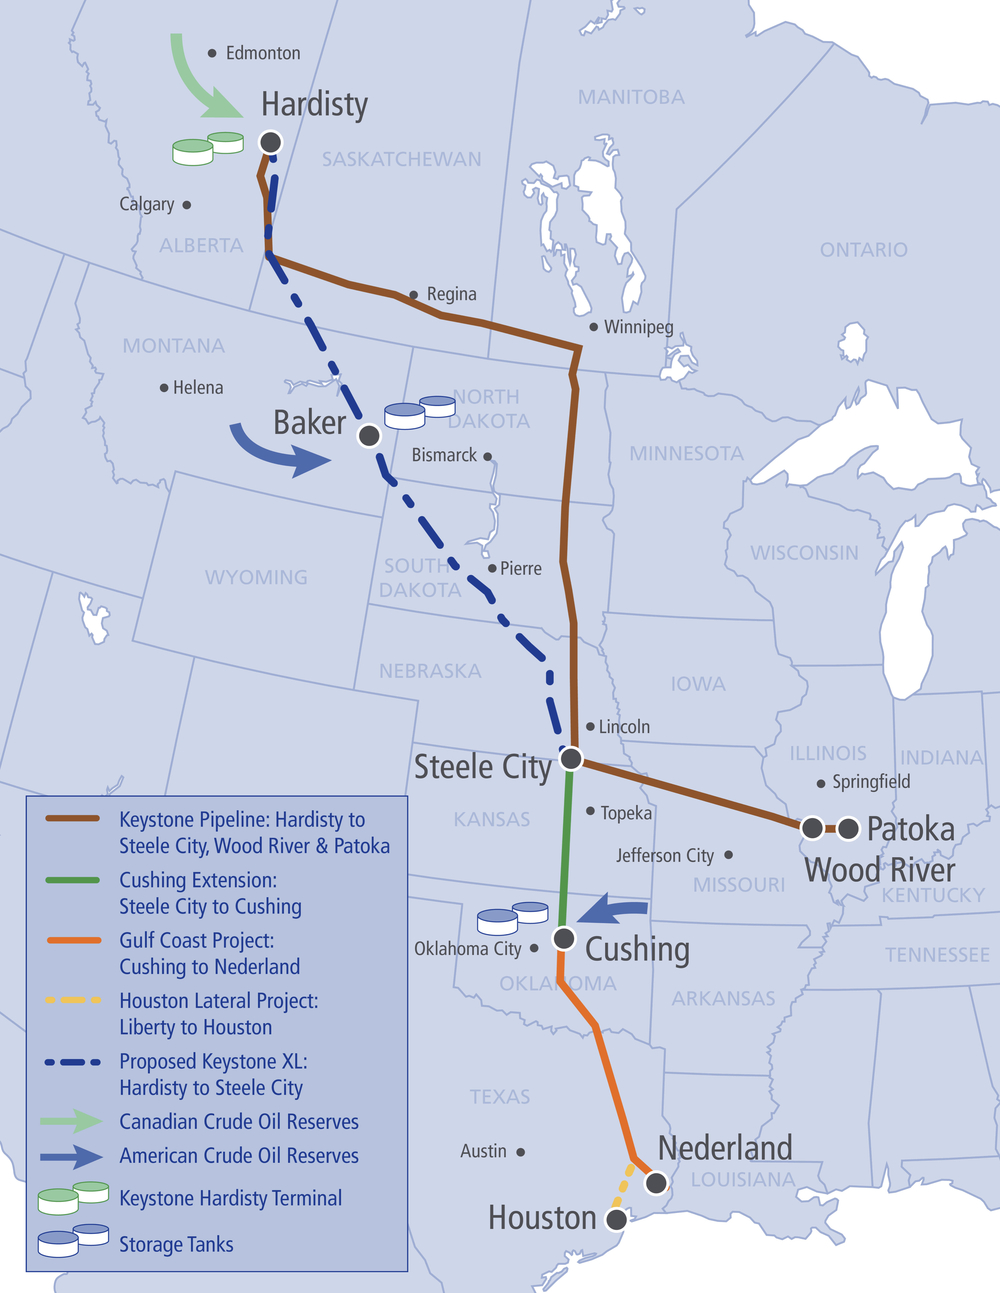 KEYSTONE XL PIPELINE ROUTING (SOURCE: TRANSCANADA)